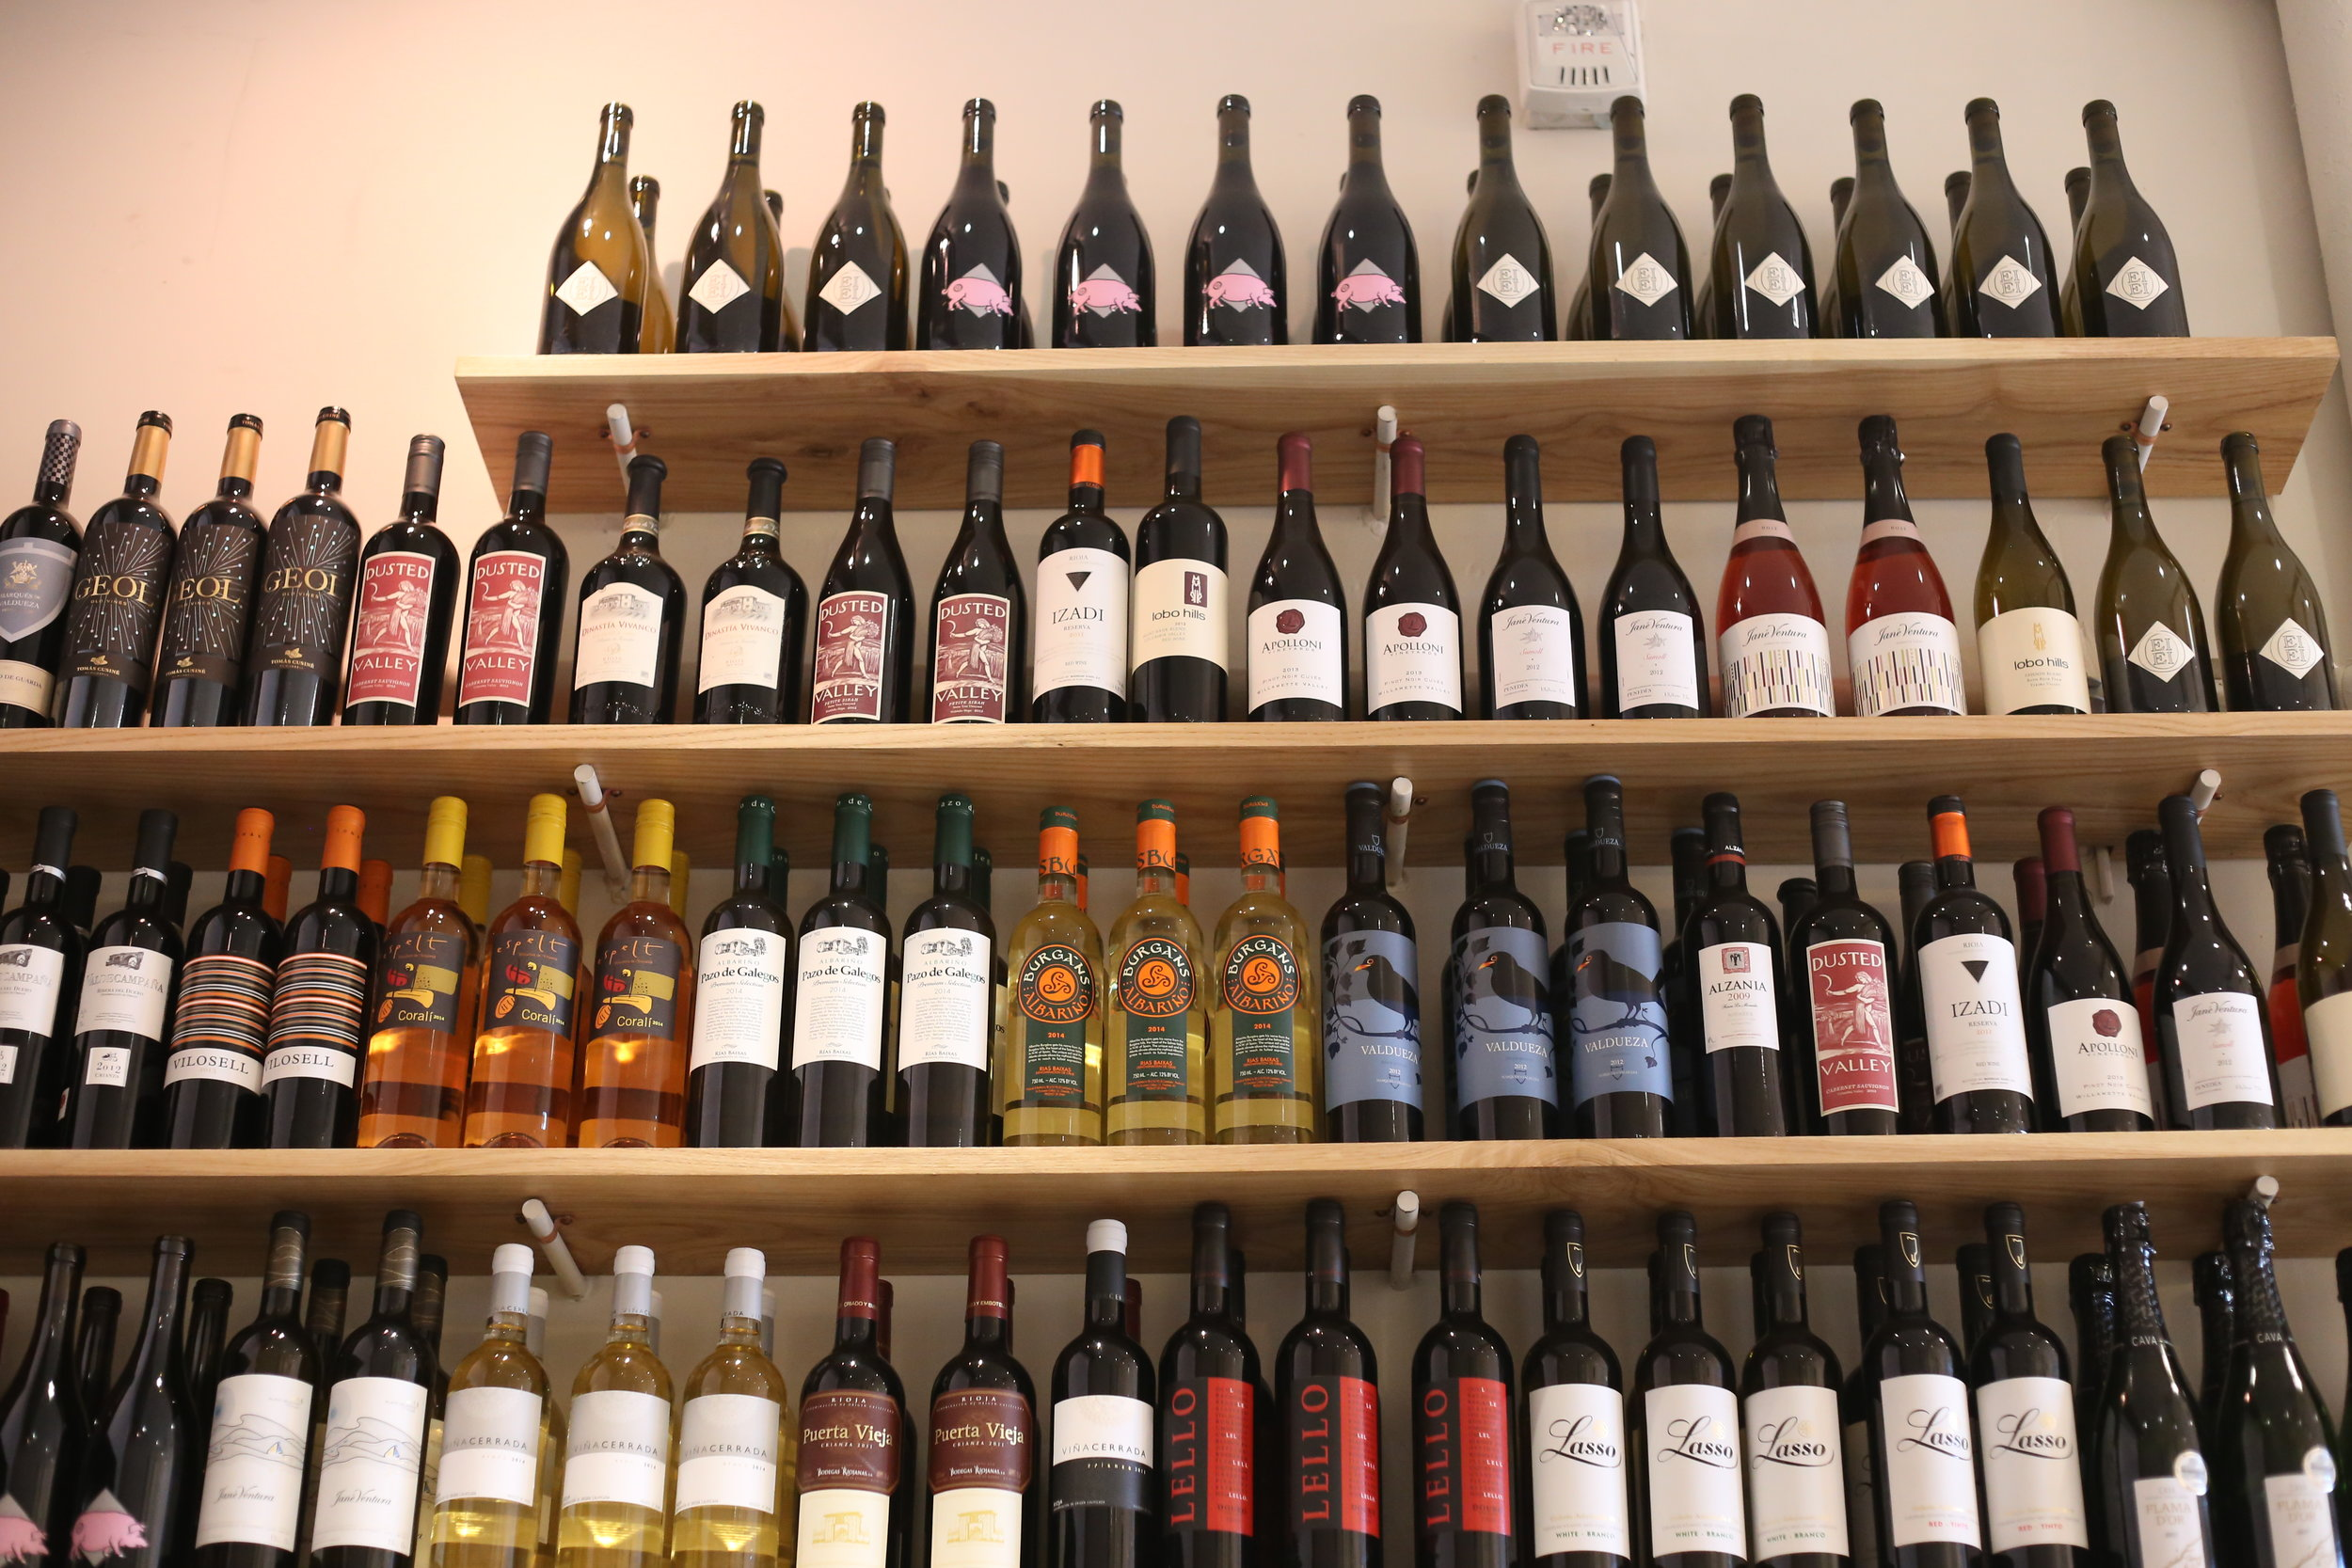 The curated wine selection at JarrBar